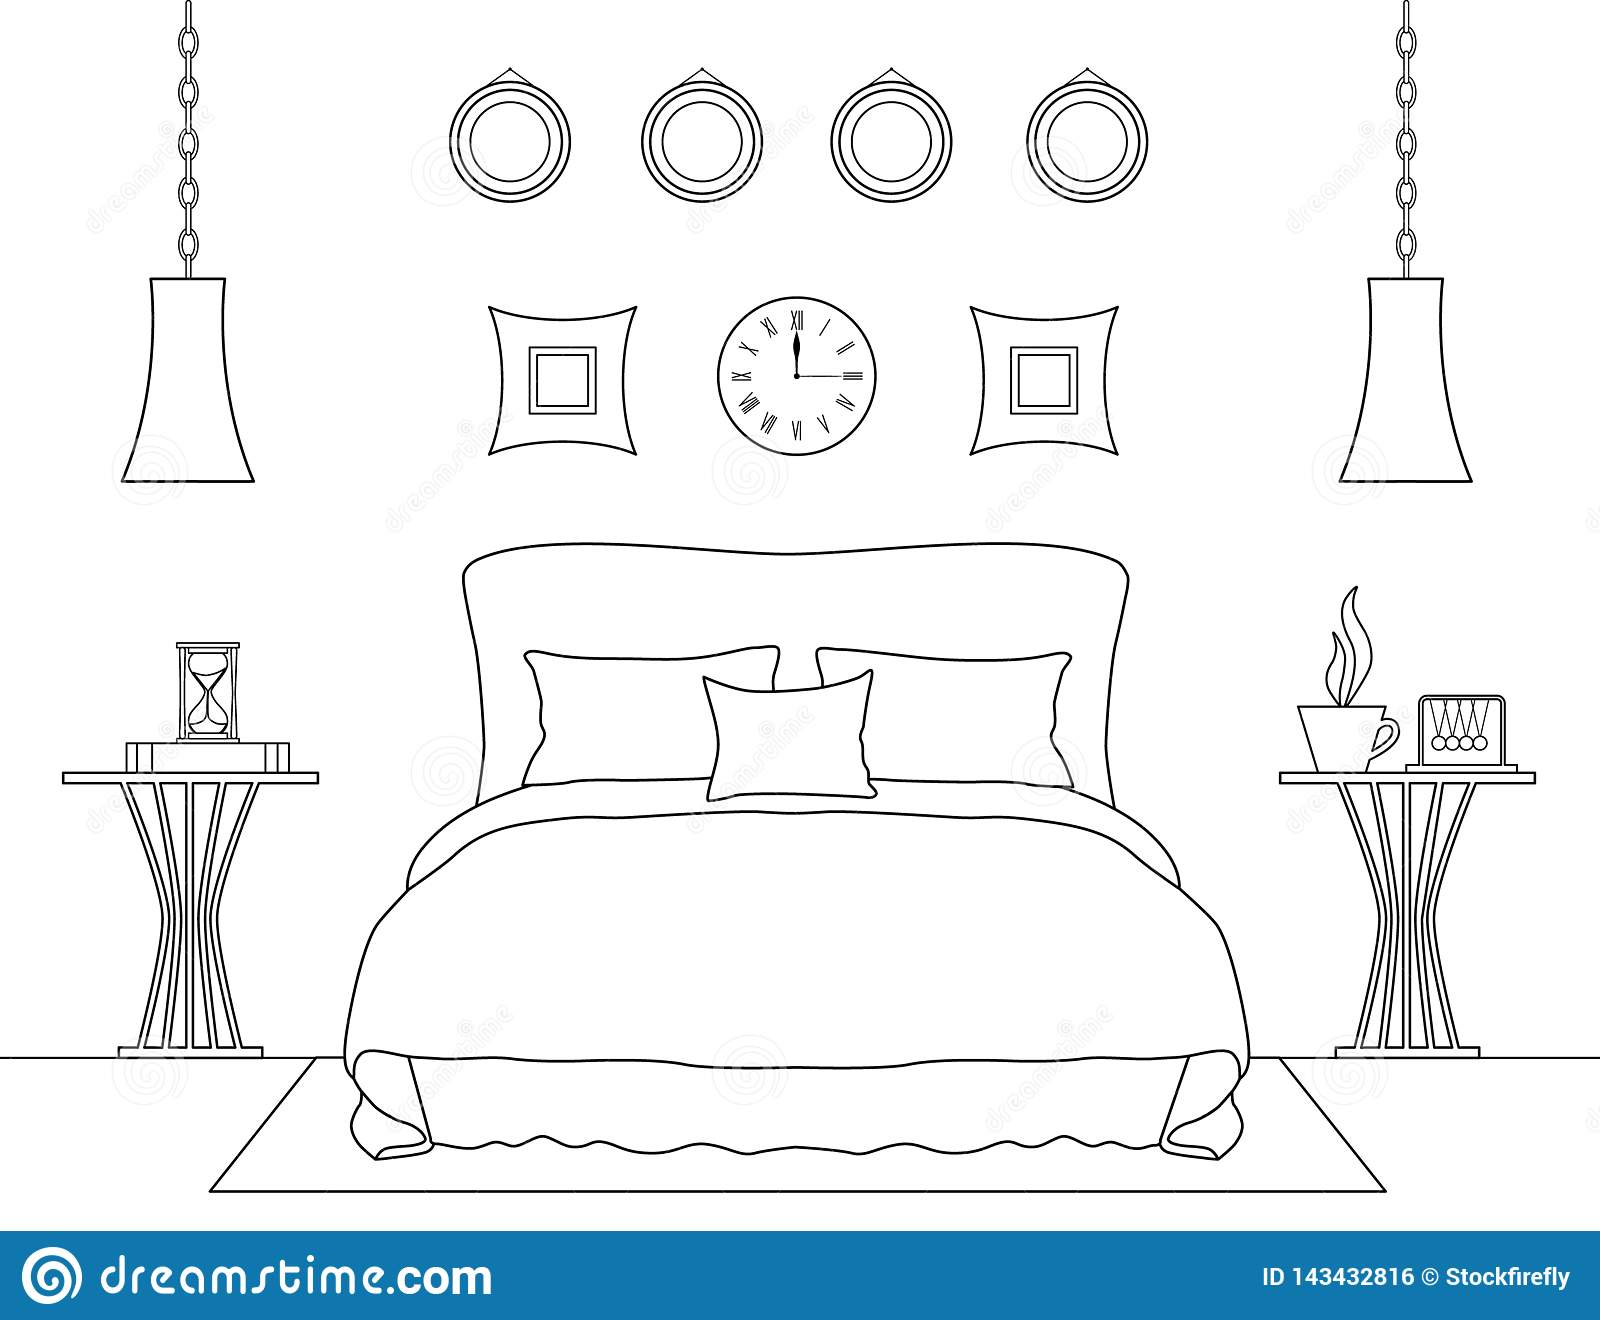 Outline Bedroom Interior. Vector Illustration. Room Template Stock